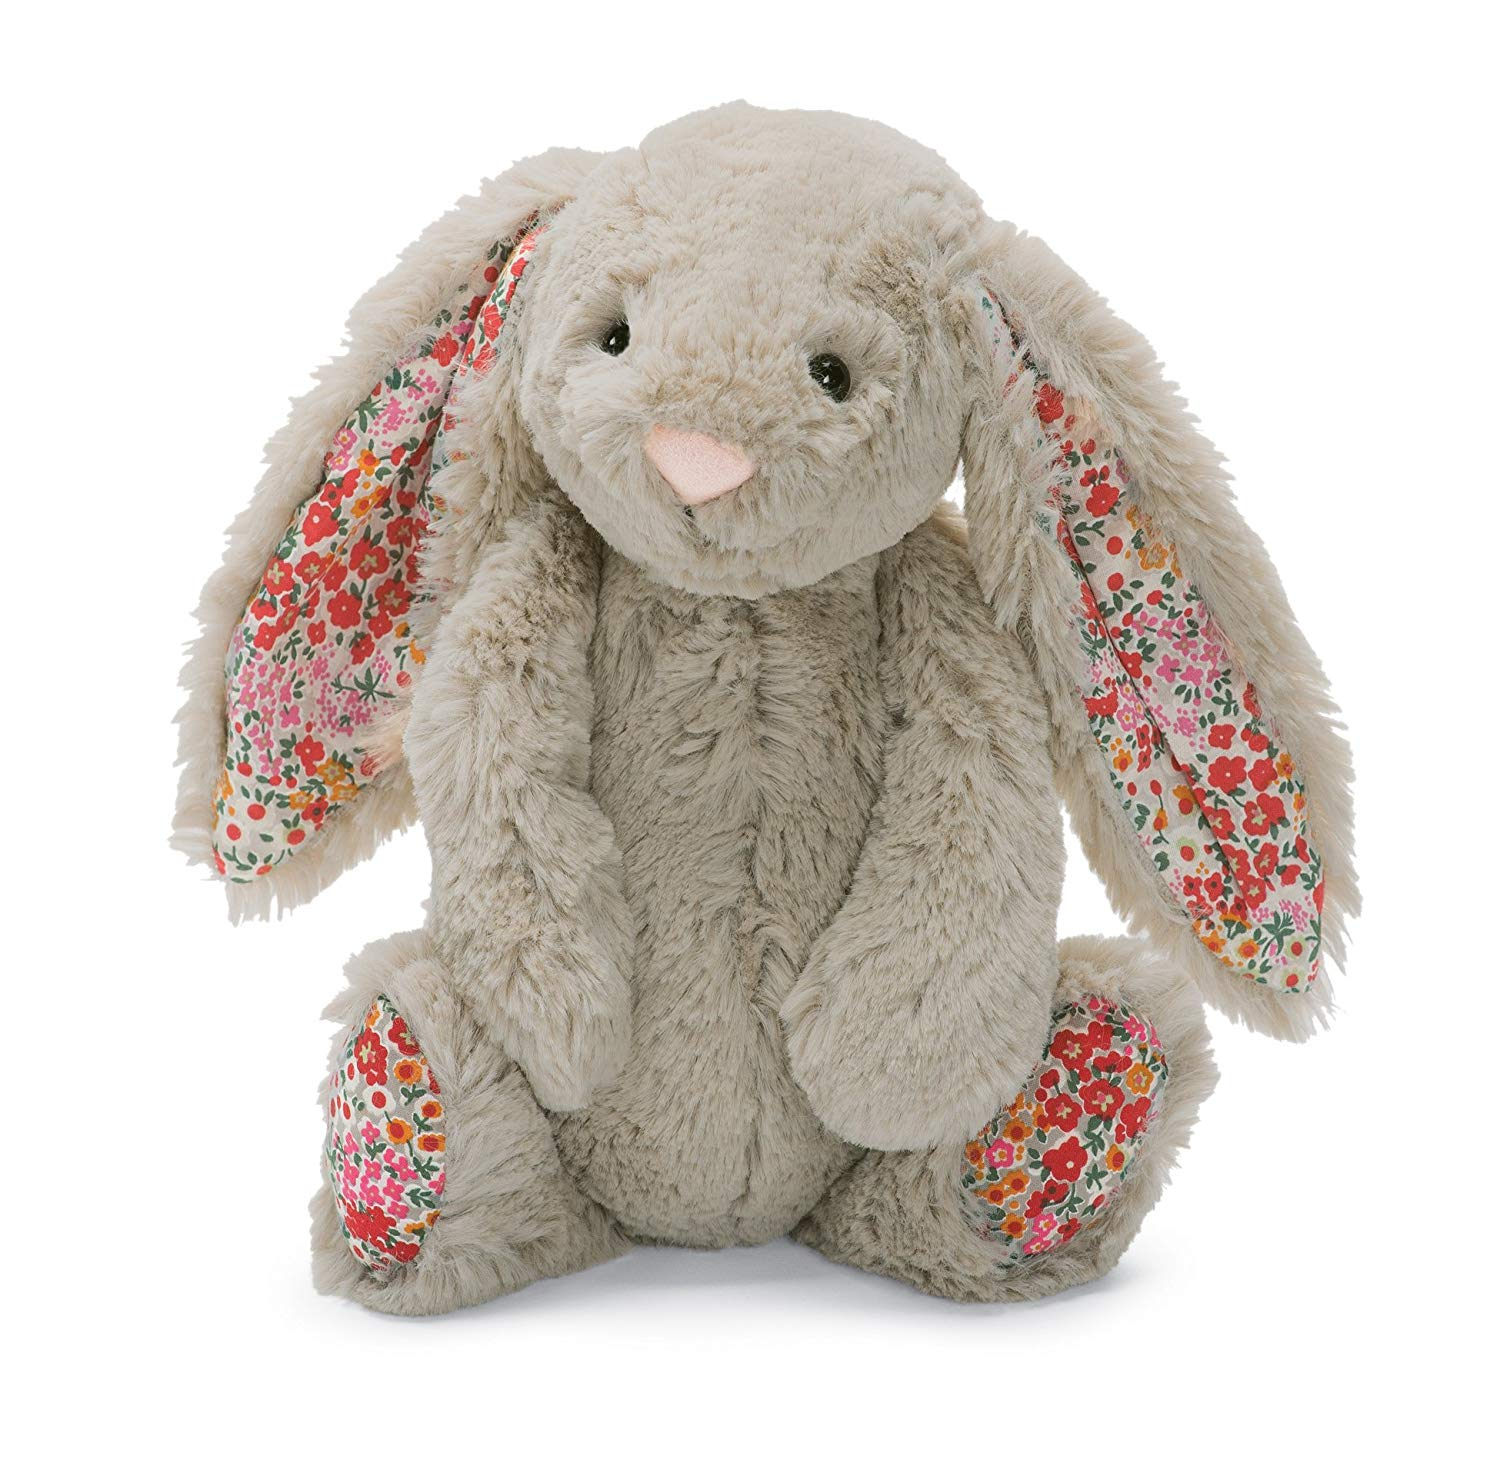 Medium Blossom Bunny Stuffed Animal